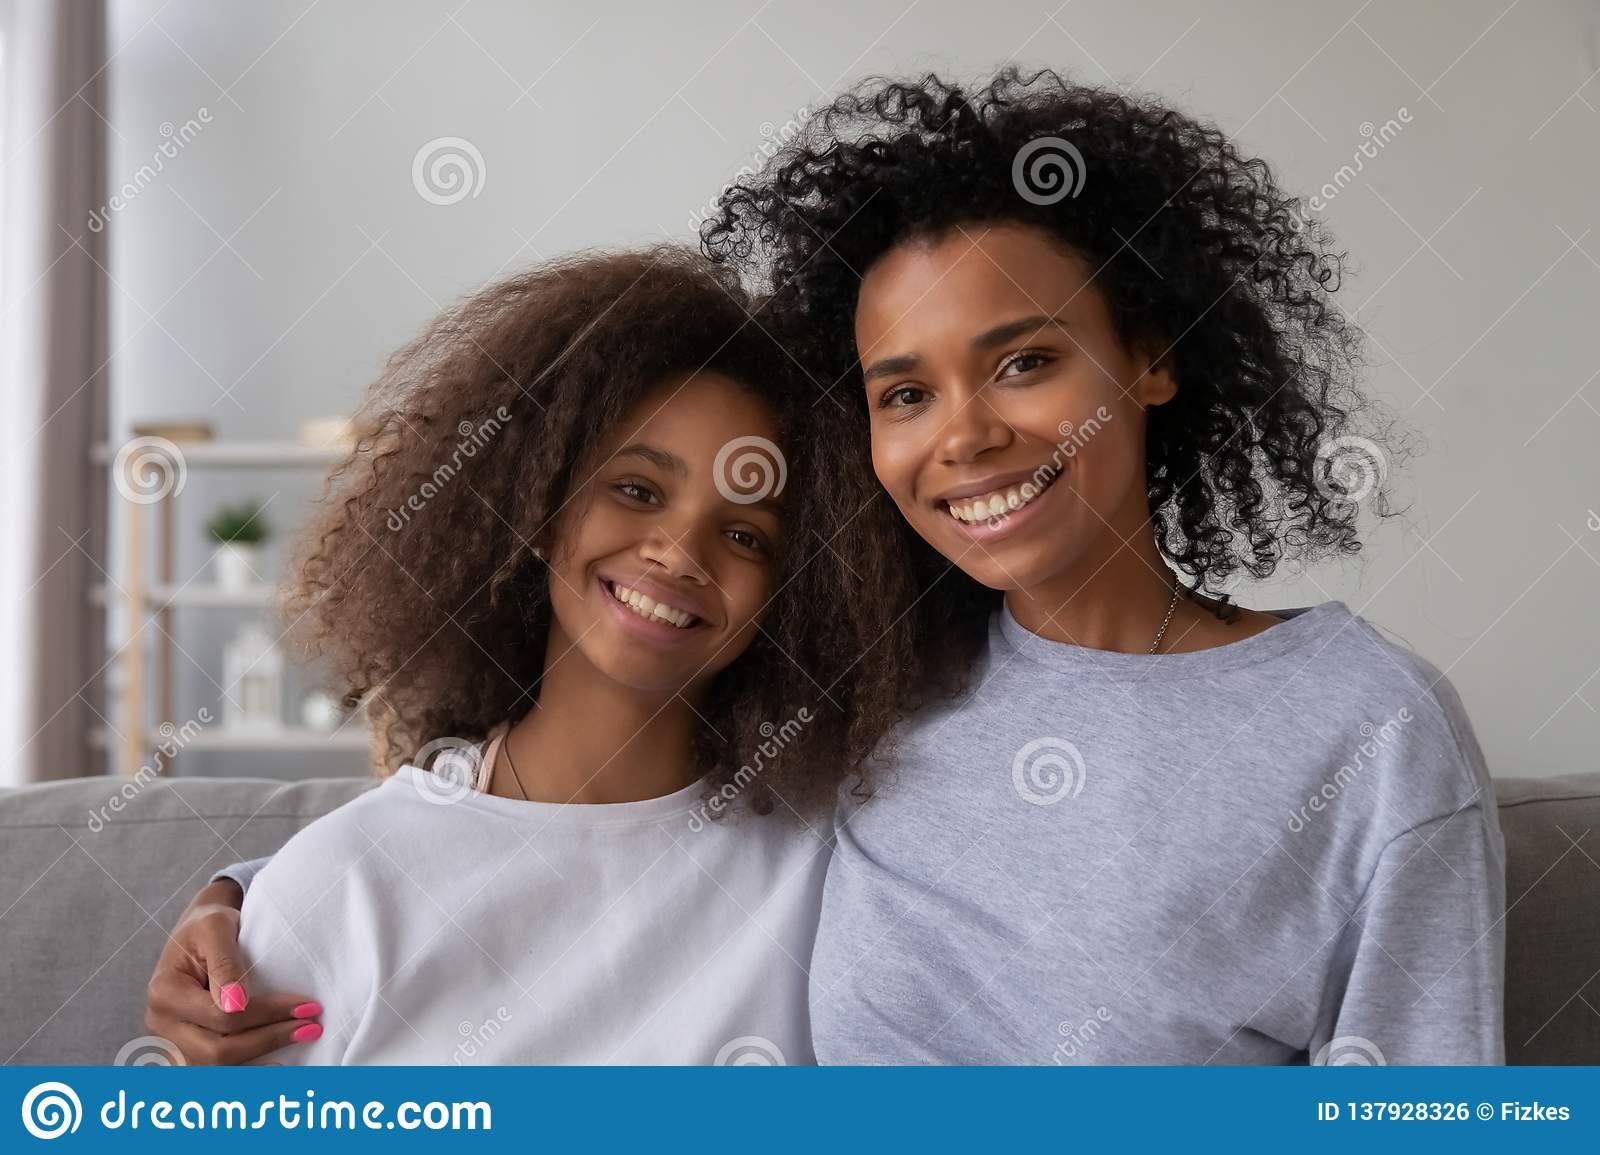 Black Stepdad Black Daughter